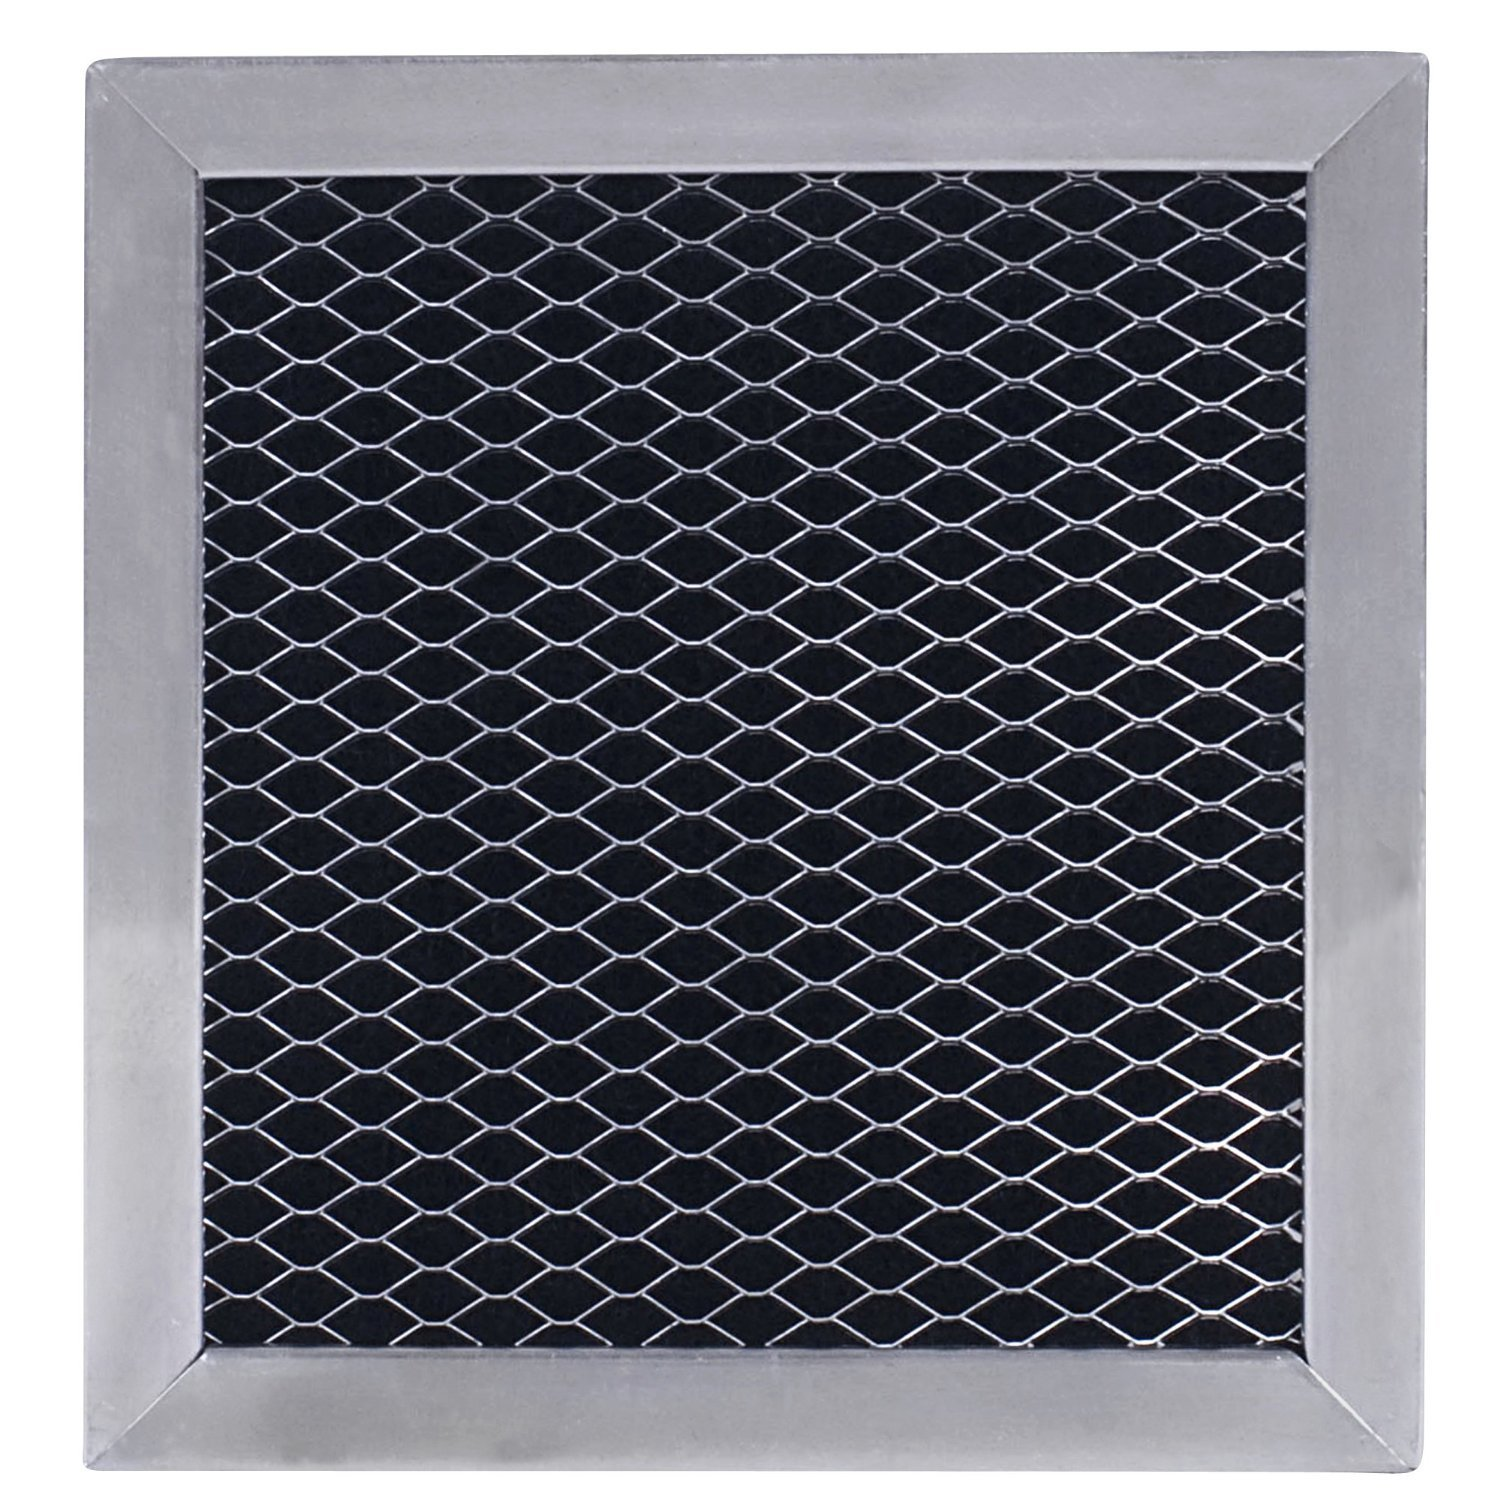 Compatible Charcoal Filter for KitchenAid KHMS2040BSS0, WMH1162XVB1, KitchenAid KHMS2040WSS0, WMH1164XWS0 Microwave